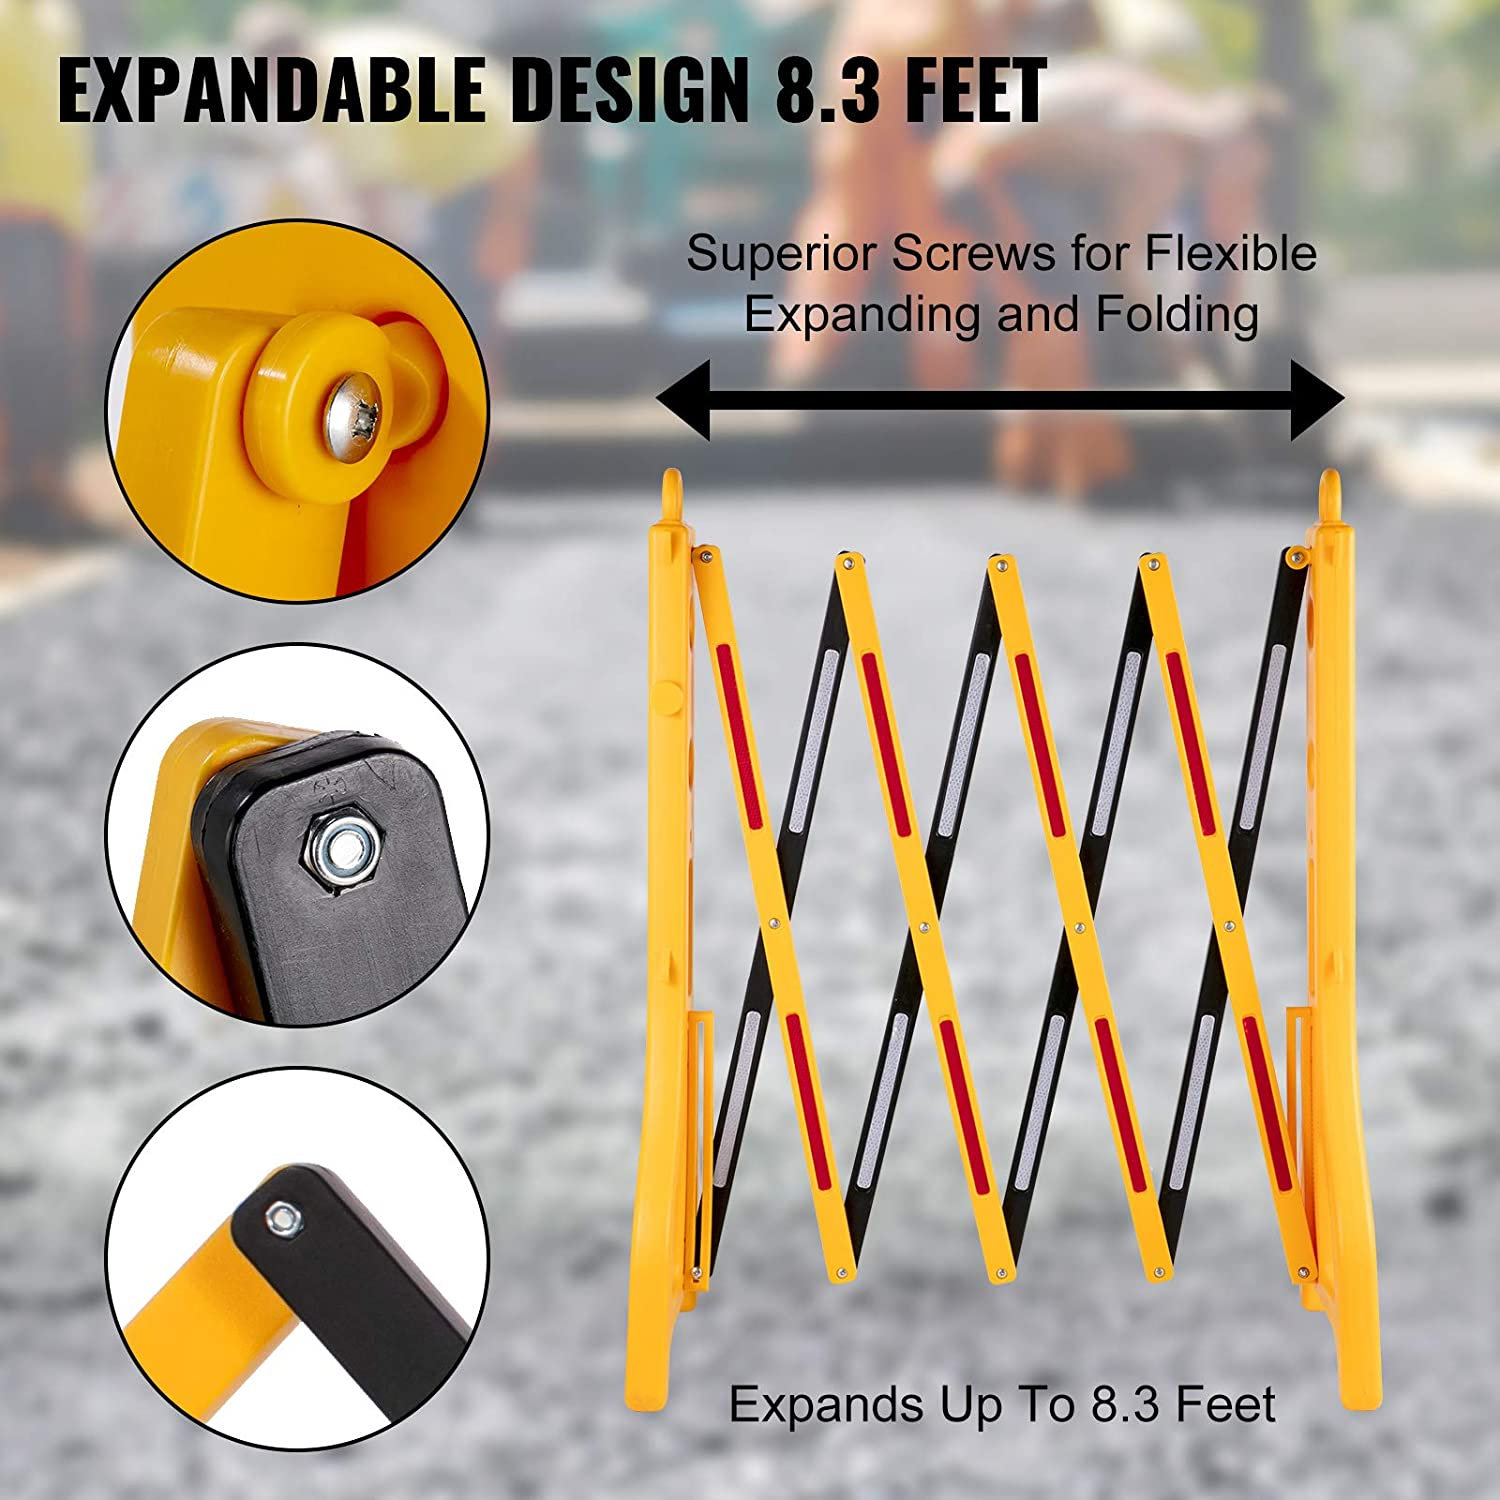 """VEVOR Expandable Mobile Barricade 8.3ft Width Plastic Barricade Water Filled Yellow Expandable Safety Barricades 38/"""" Height Expandable Barricade Fence 2pcs Traffic Barricade w//Reflectors w// 2 Chains"""